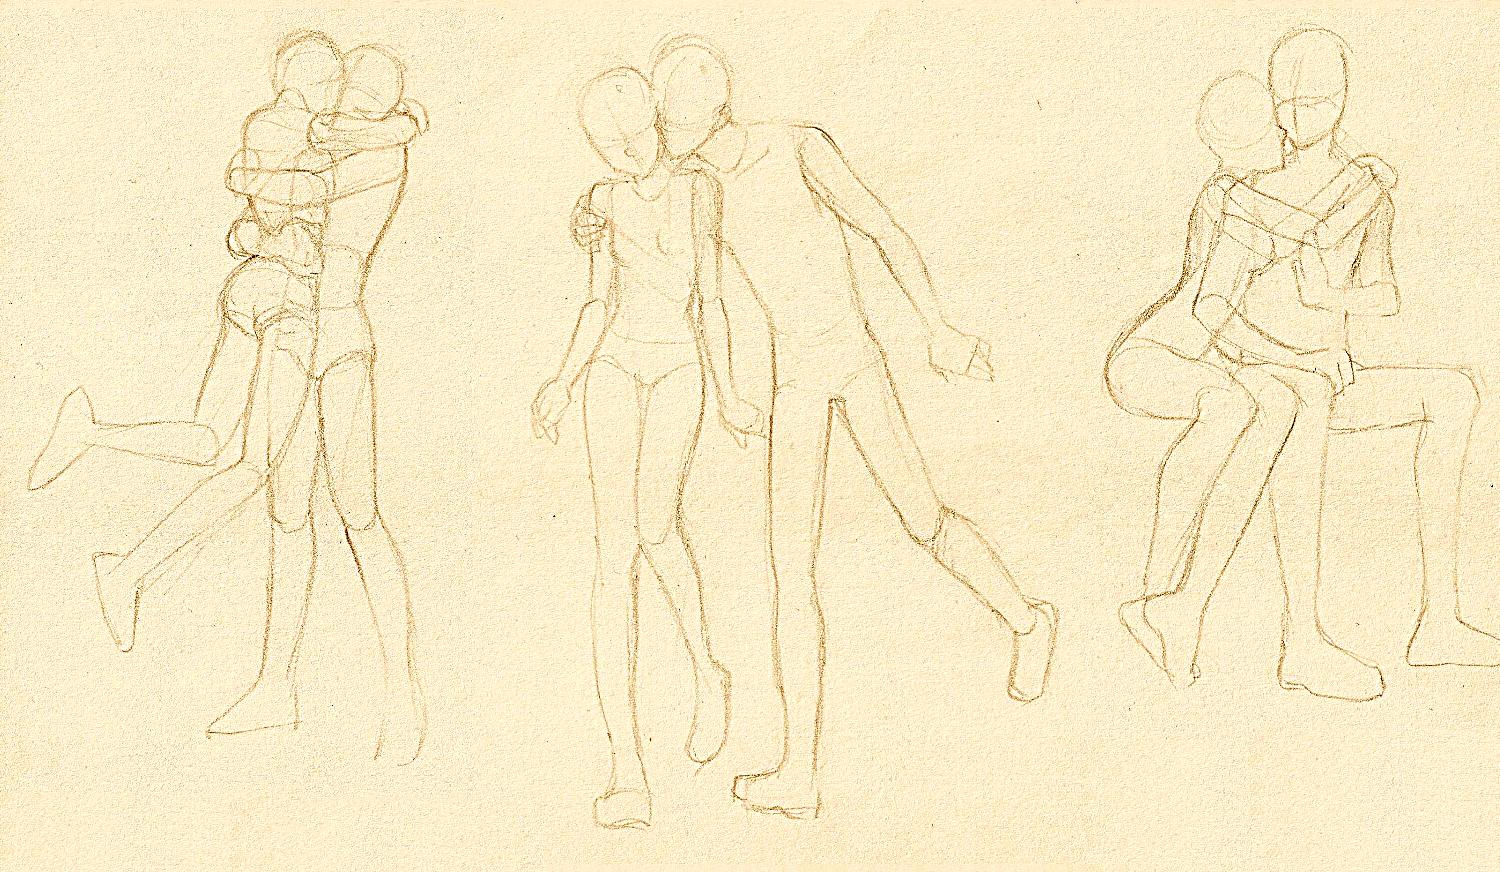 Some more poses by ChaosAngelus on DeviantArt